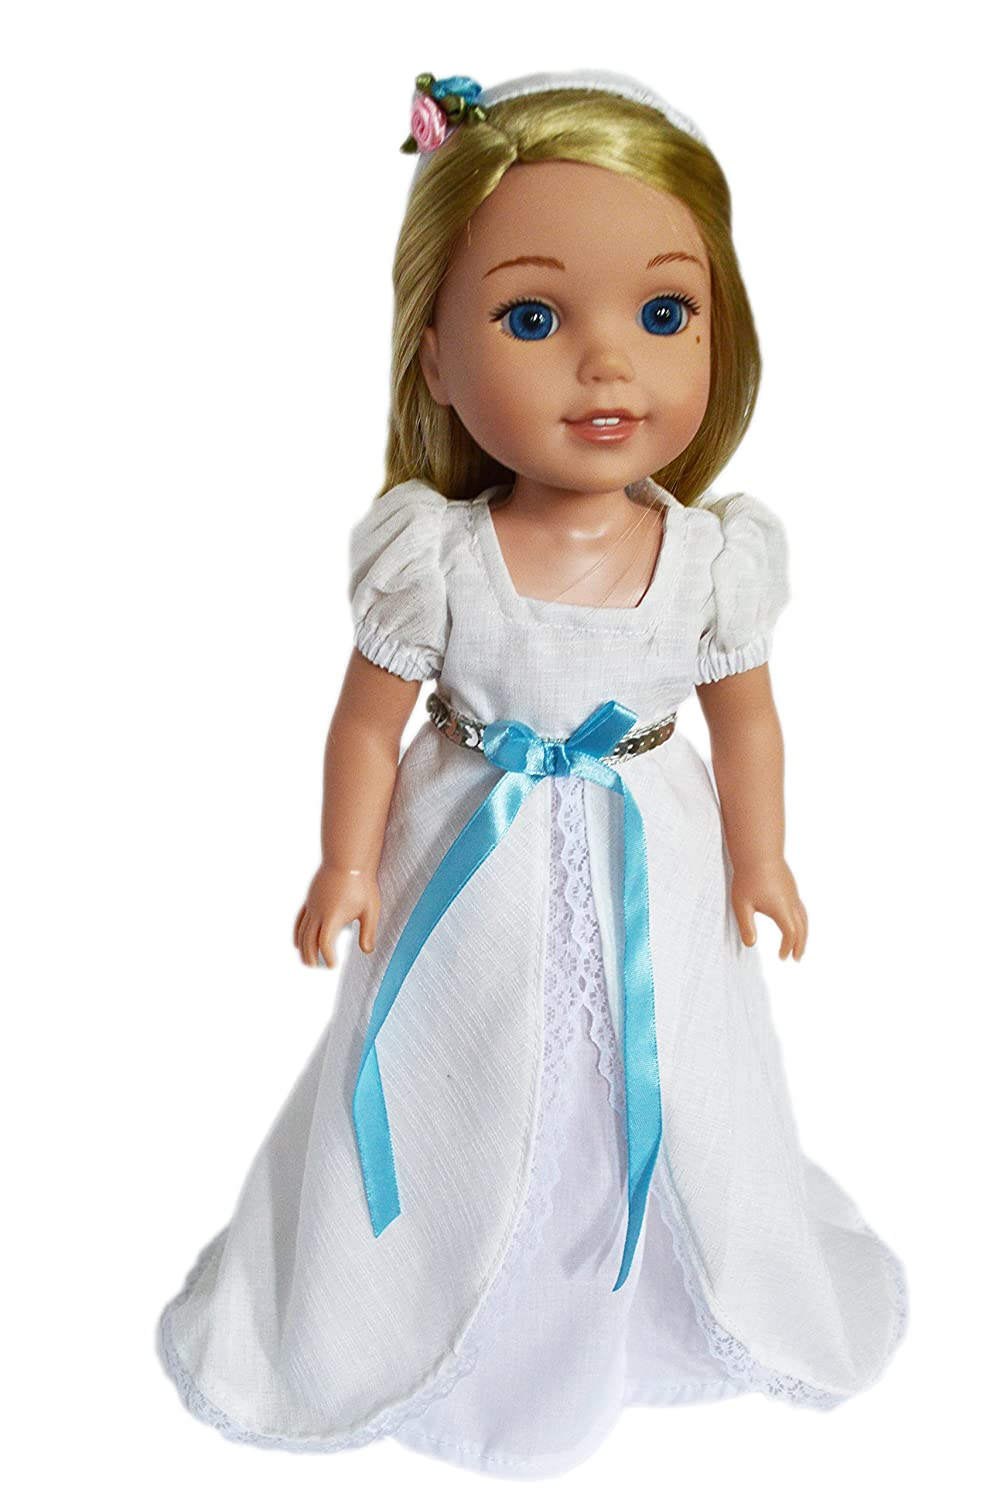 Brittanys My White Victorian Gown with Headband Compatible with Wellie Wisher Dolls Brittany/'s